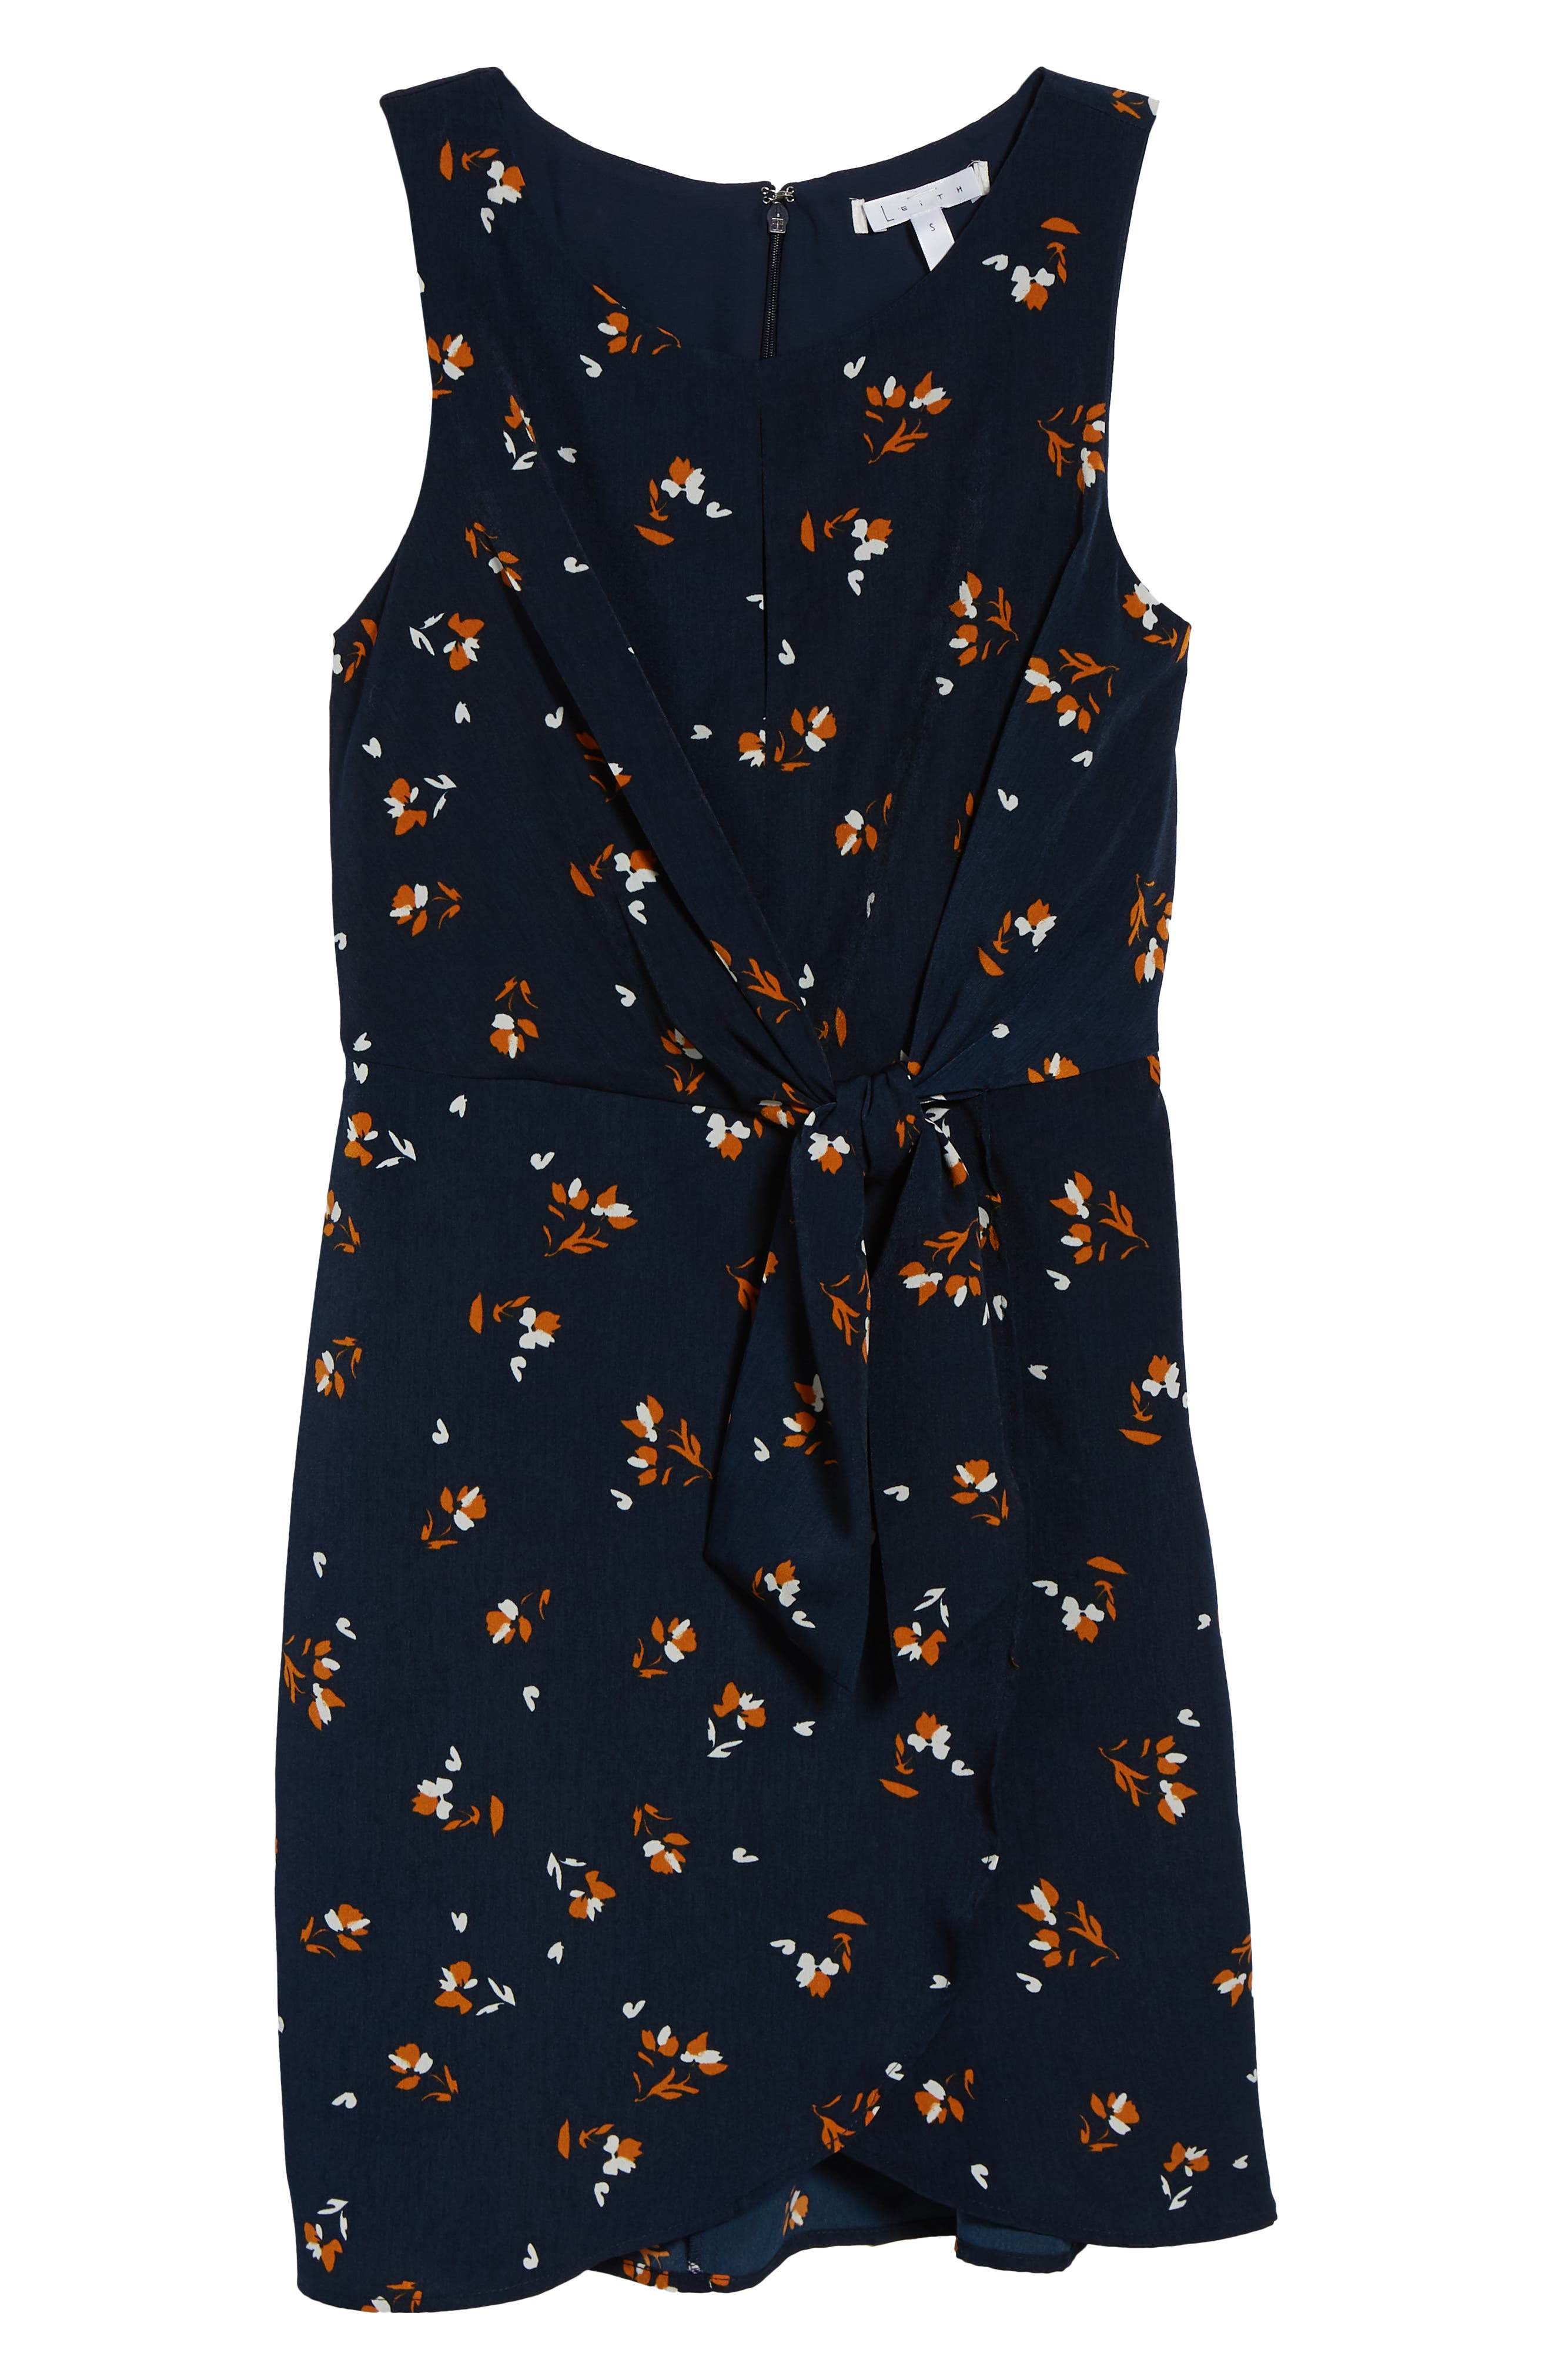 Tie-Front Mini Dress,                             Alternate thumbnail 7, color,                             NAVY EVENING DITSY FLORAL